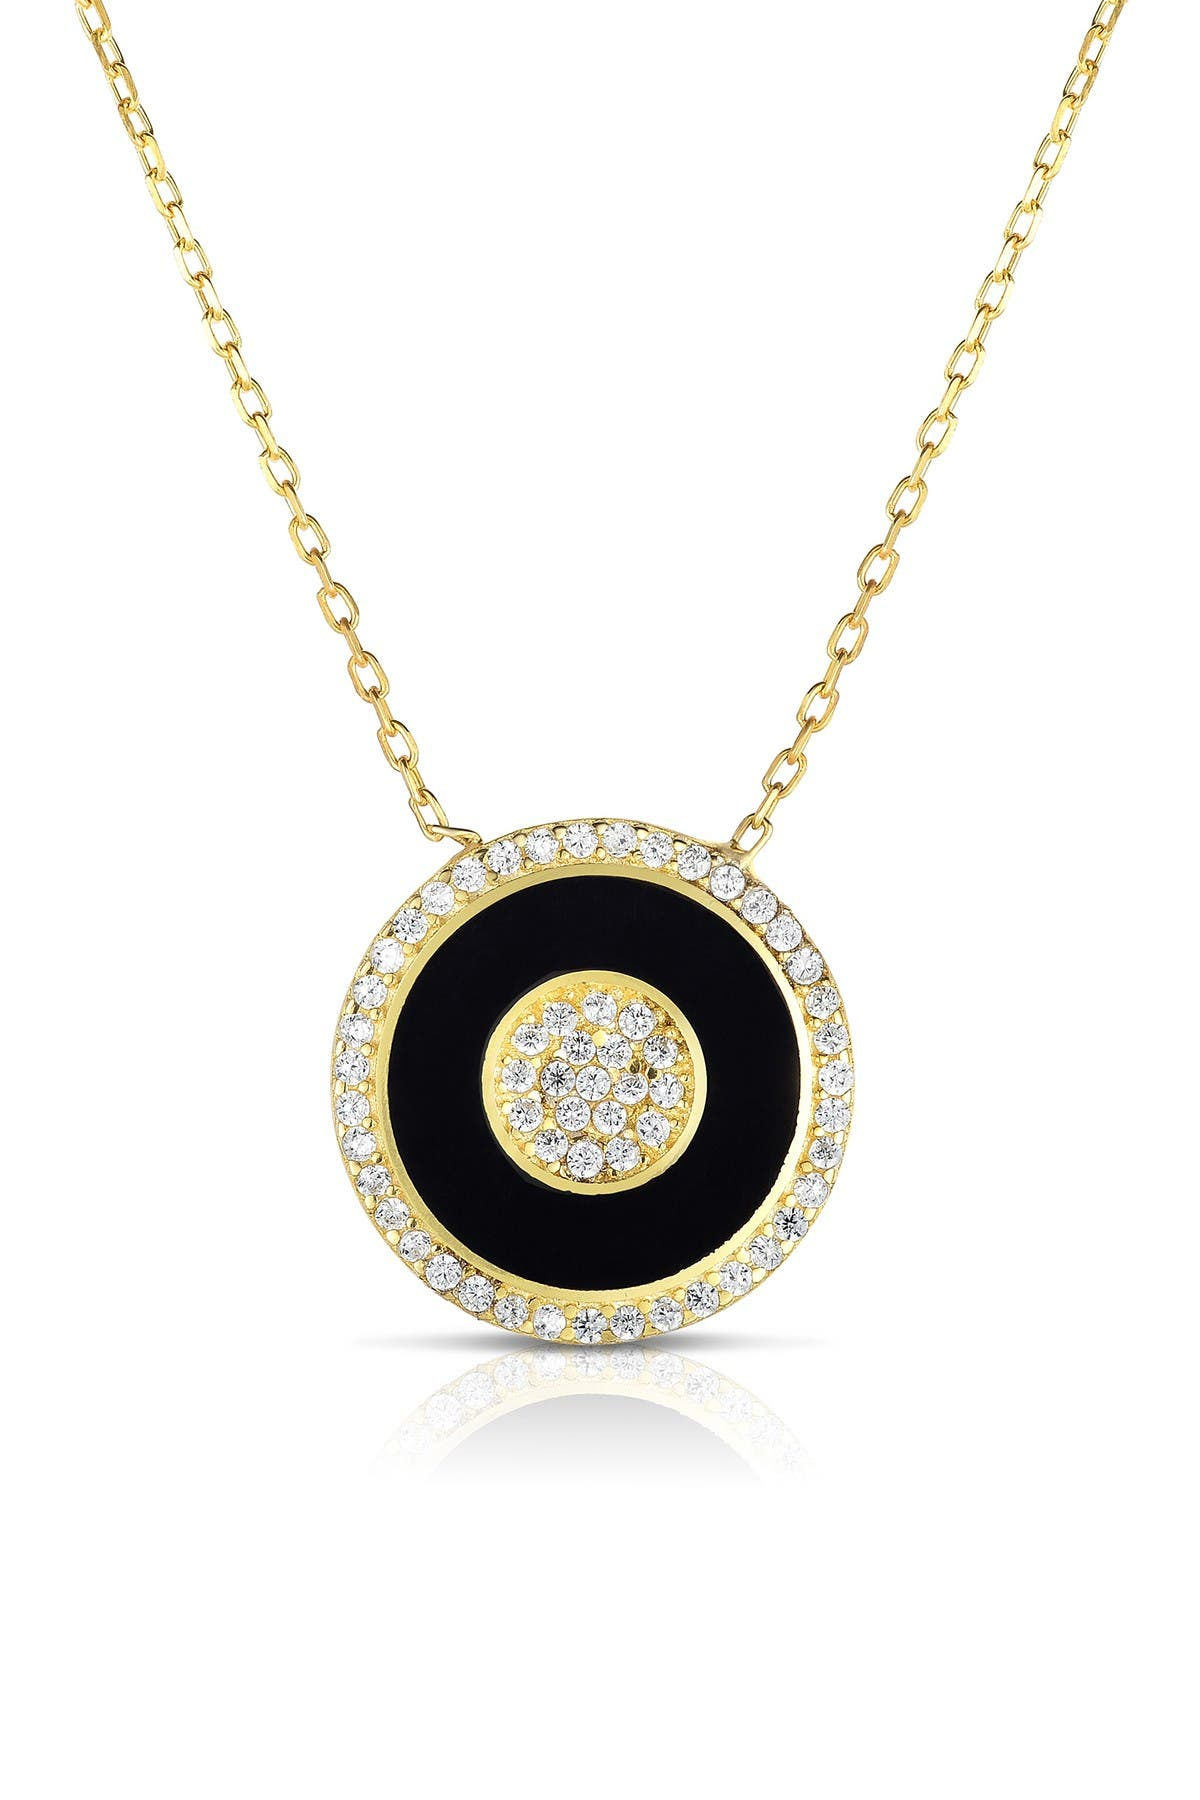 Sphera Milano 18K Yellow Gold Plated Sterling Silver Pave CZ Black Bullseye Pendant Necklace at Nordstrom Rack